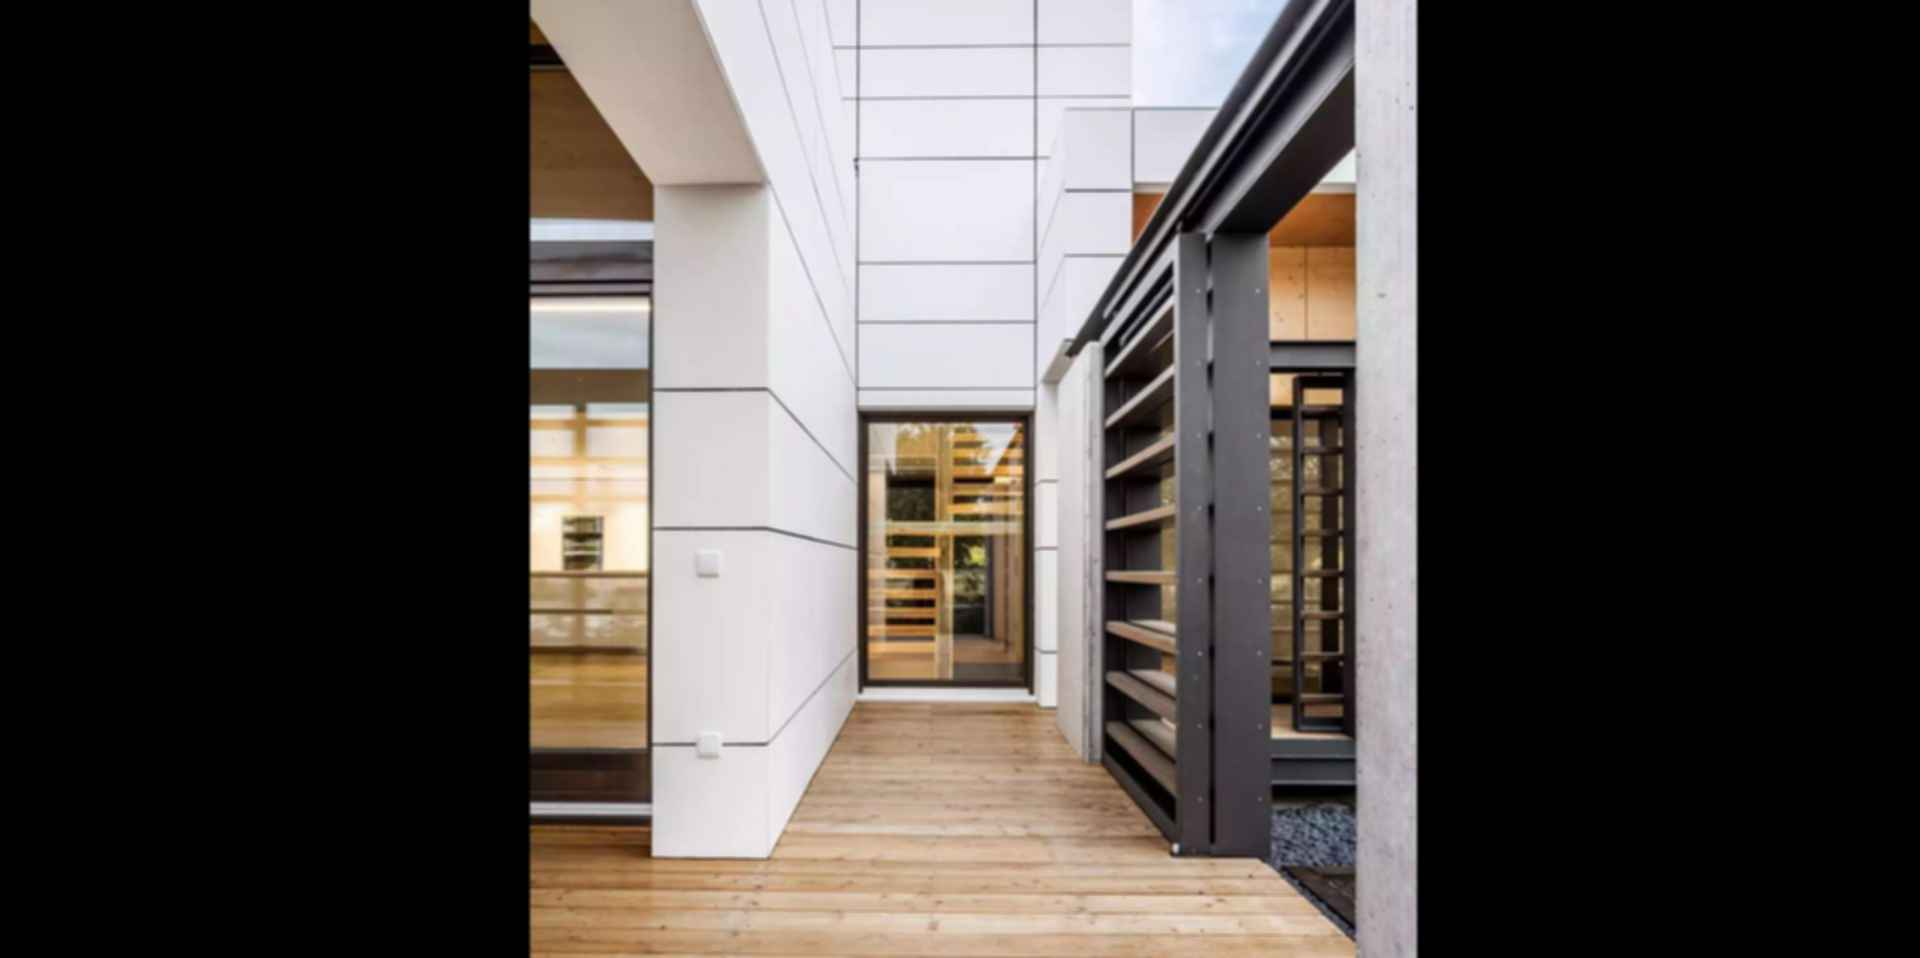 Low Energy Consumption Residences - Exterior/Decking